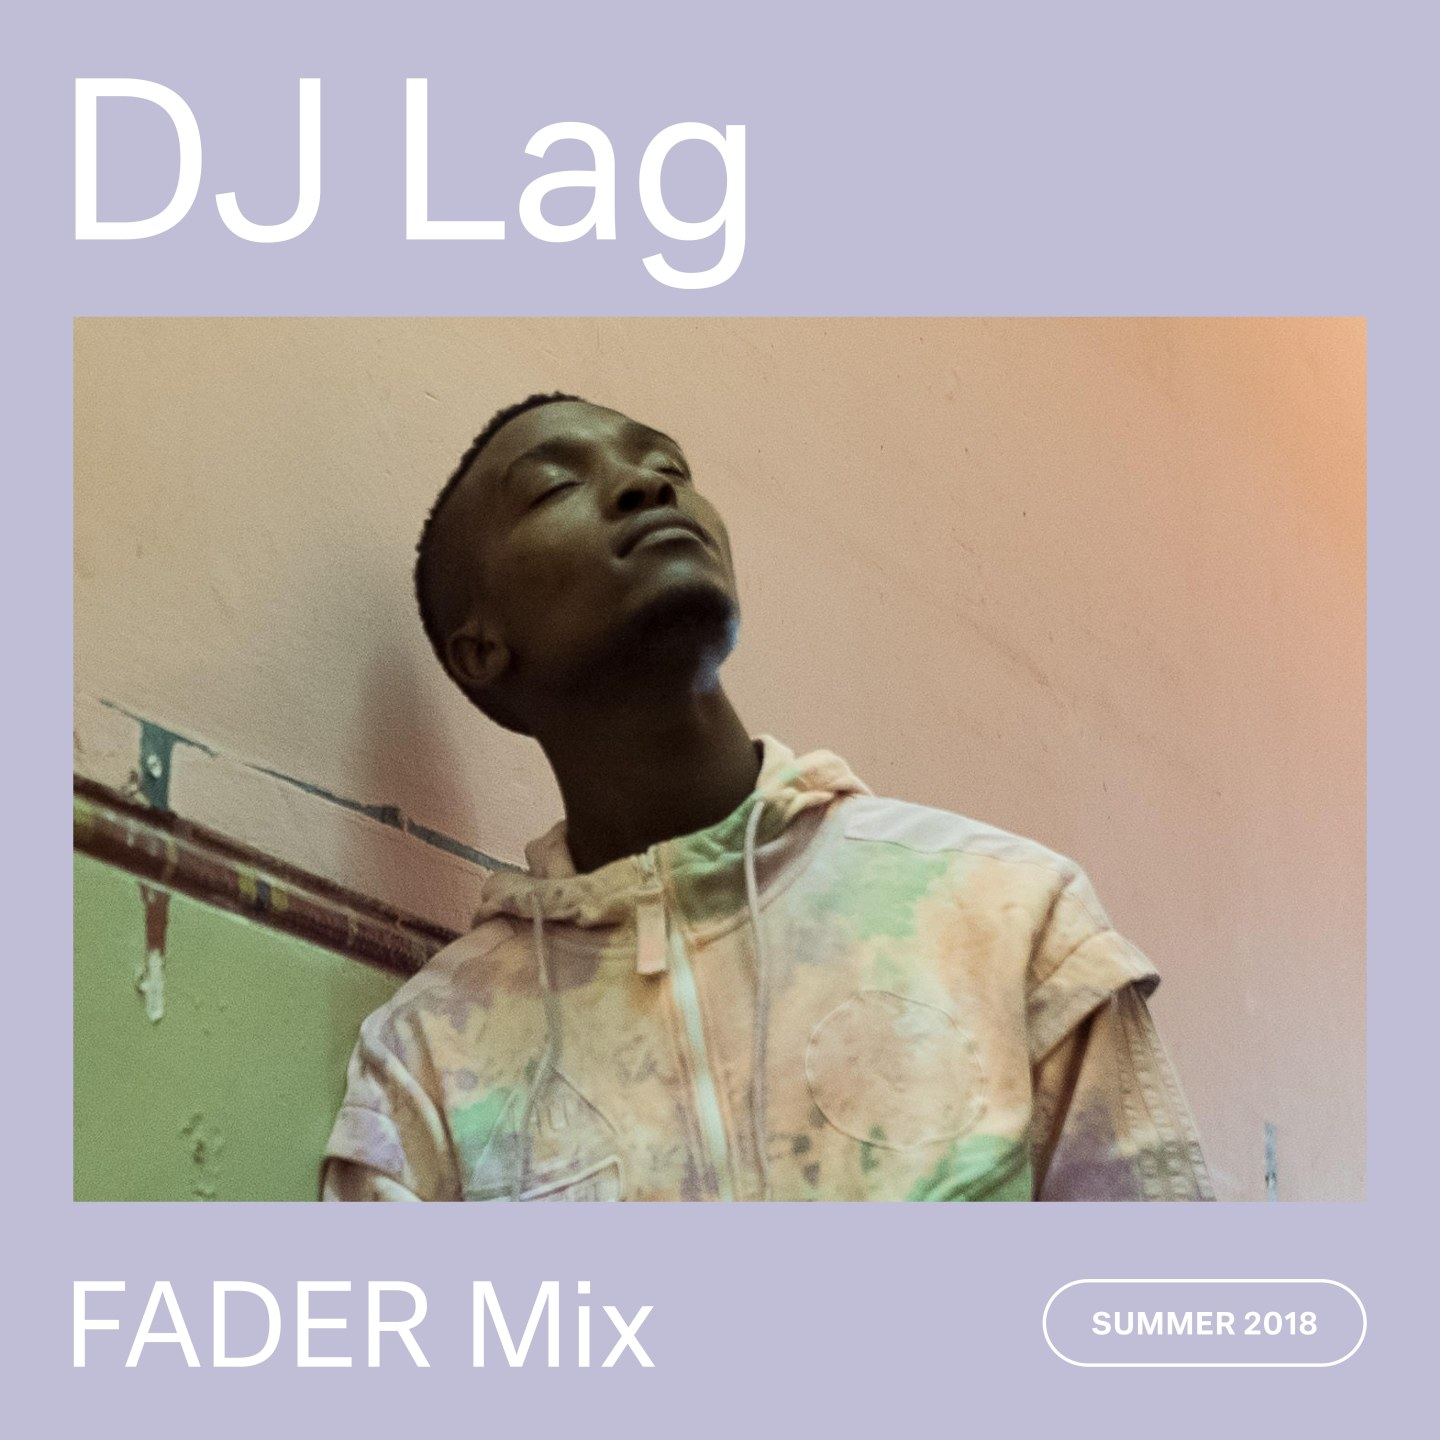 Listen to a new FADER Mix by DJ Lag